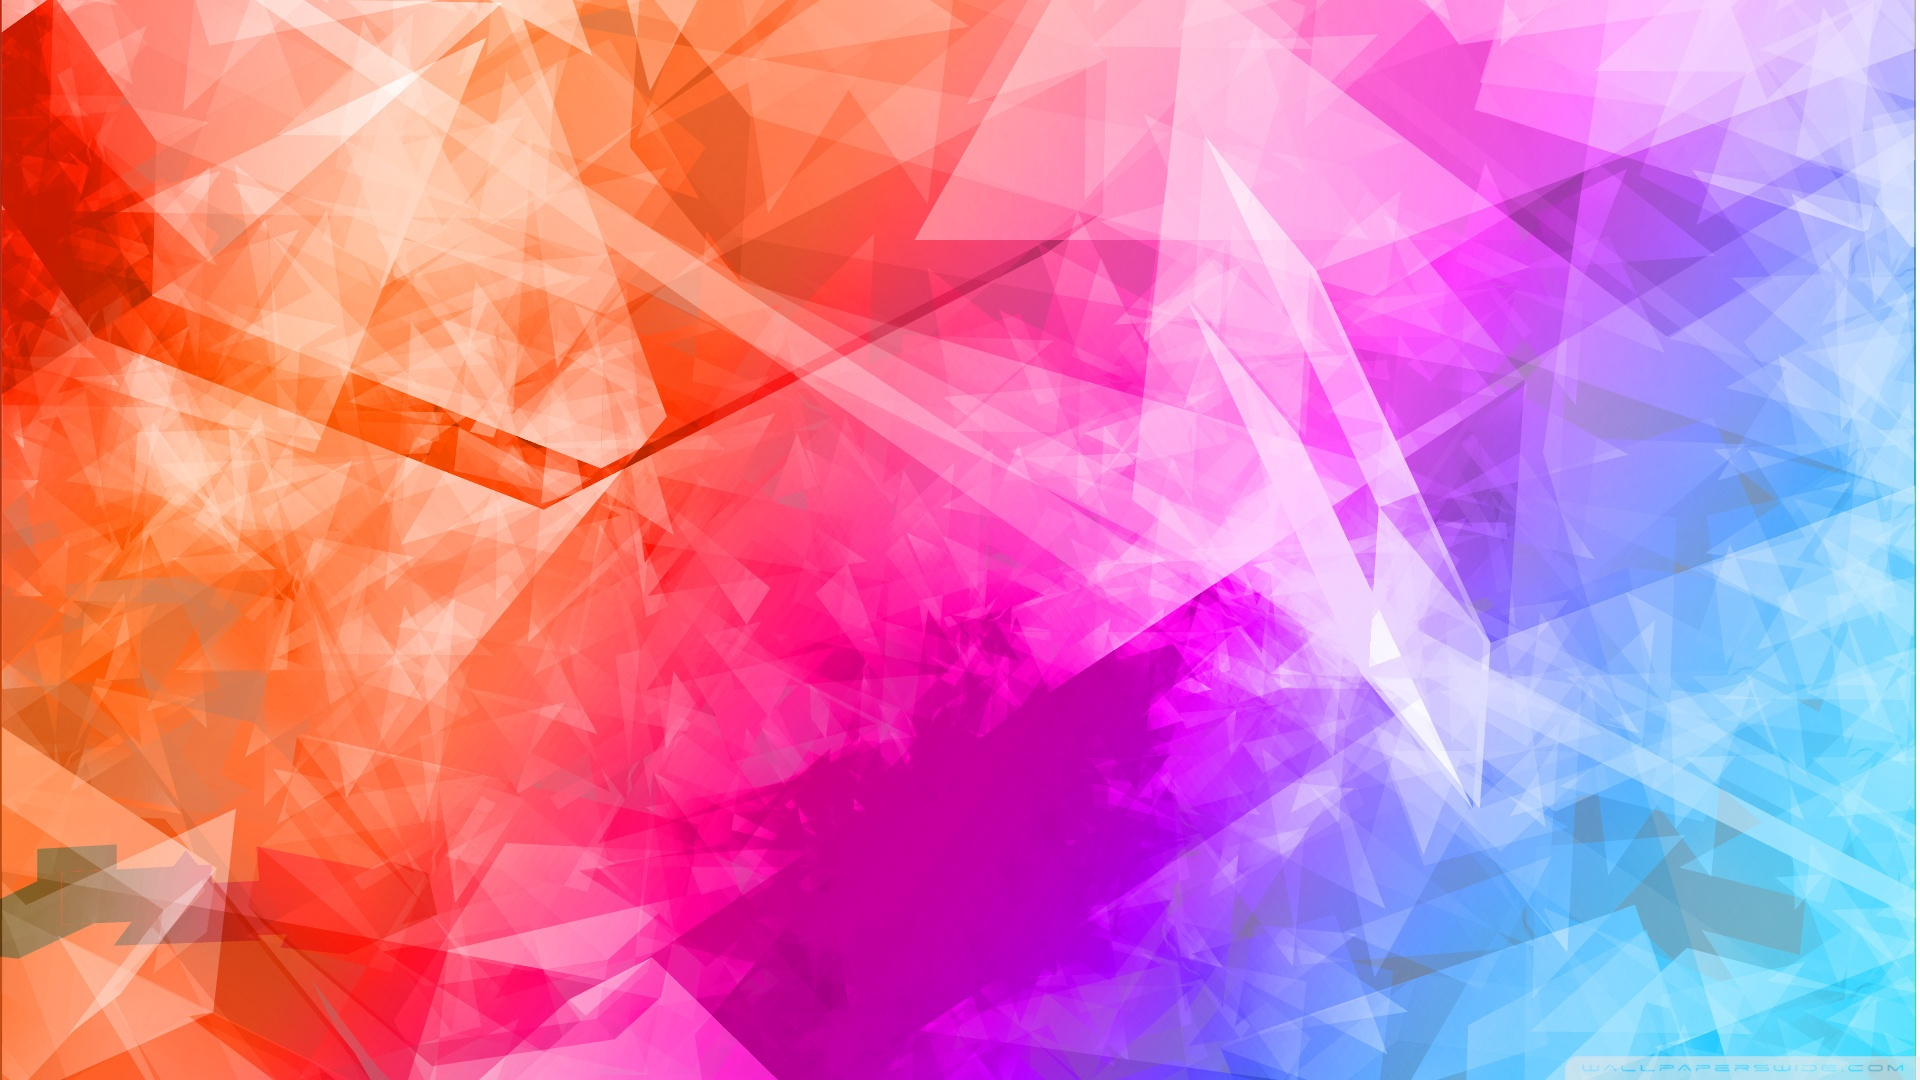 Cool 3d Ipad Wallpapers Abstract Polygonal Colorful Background 4k Hd Desktop